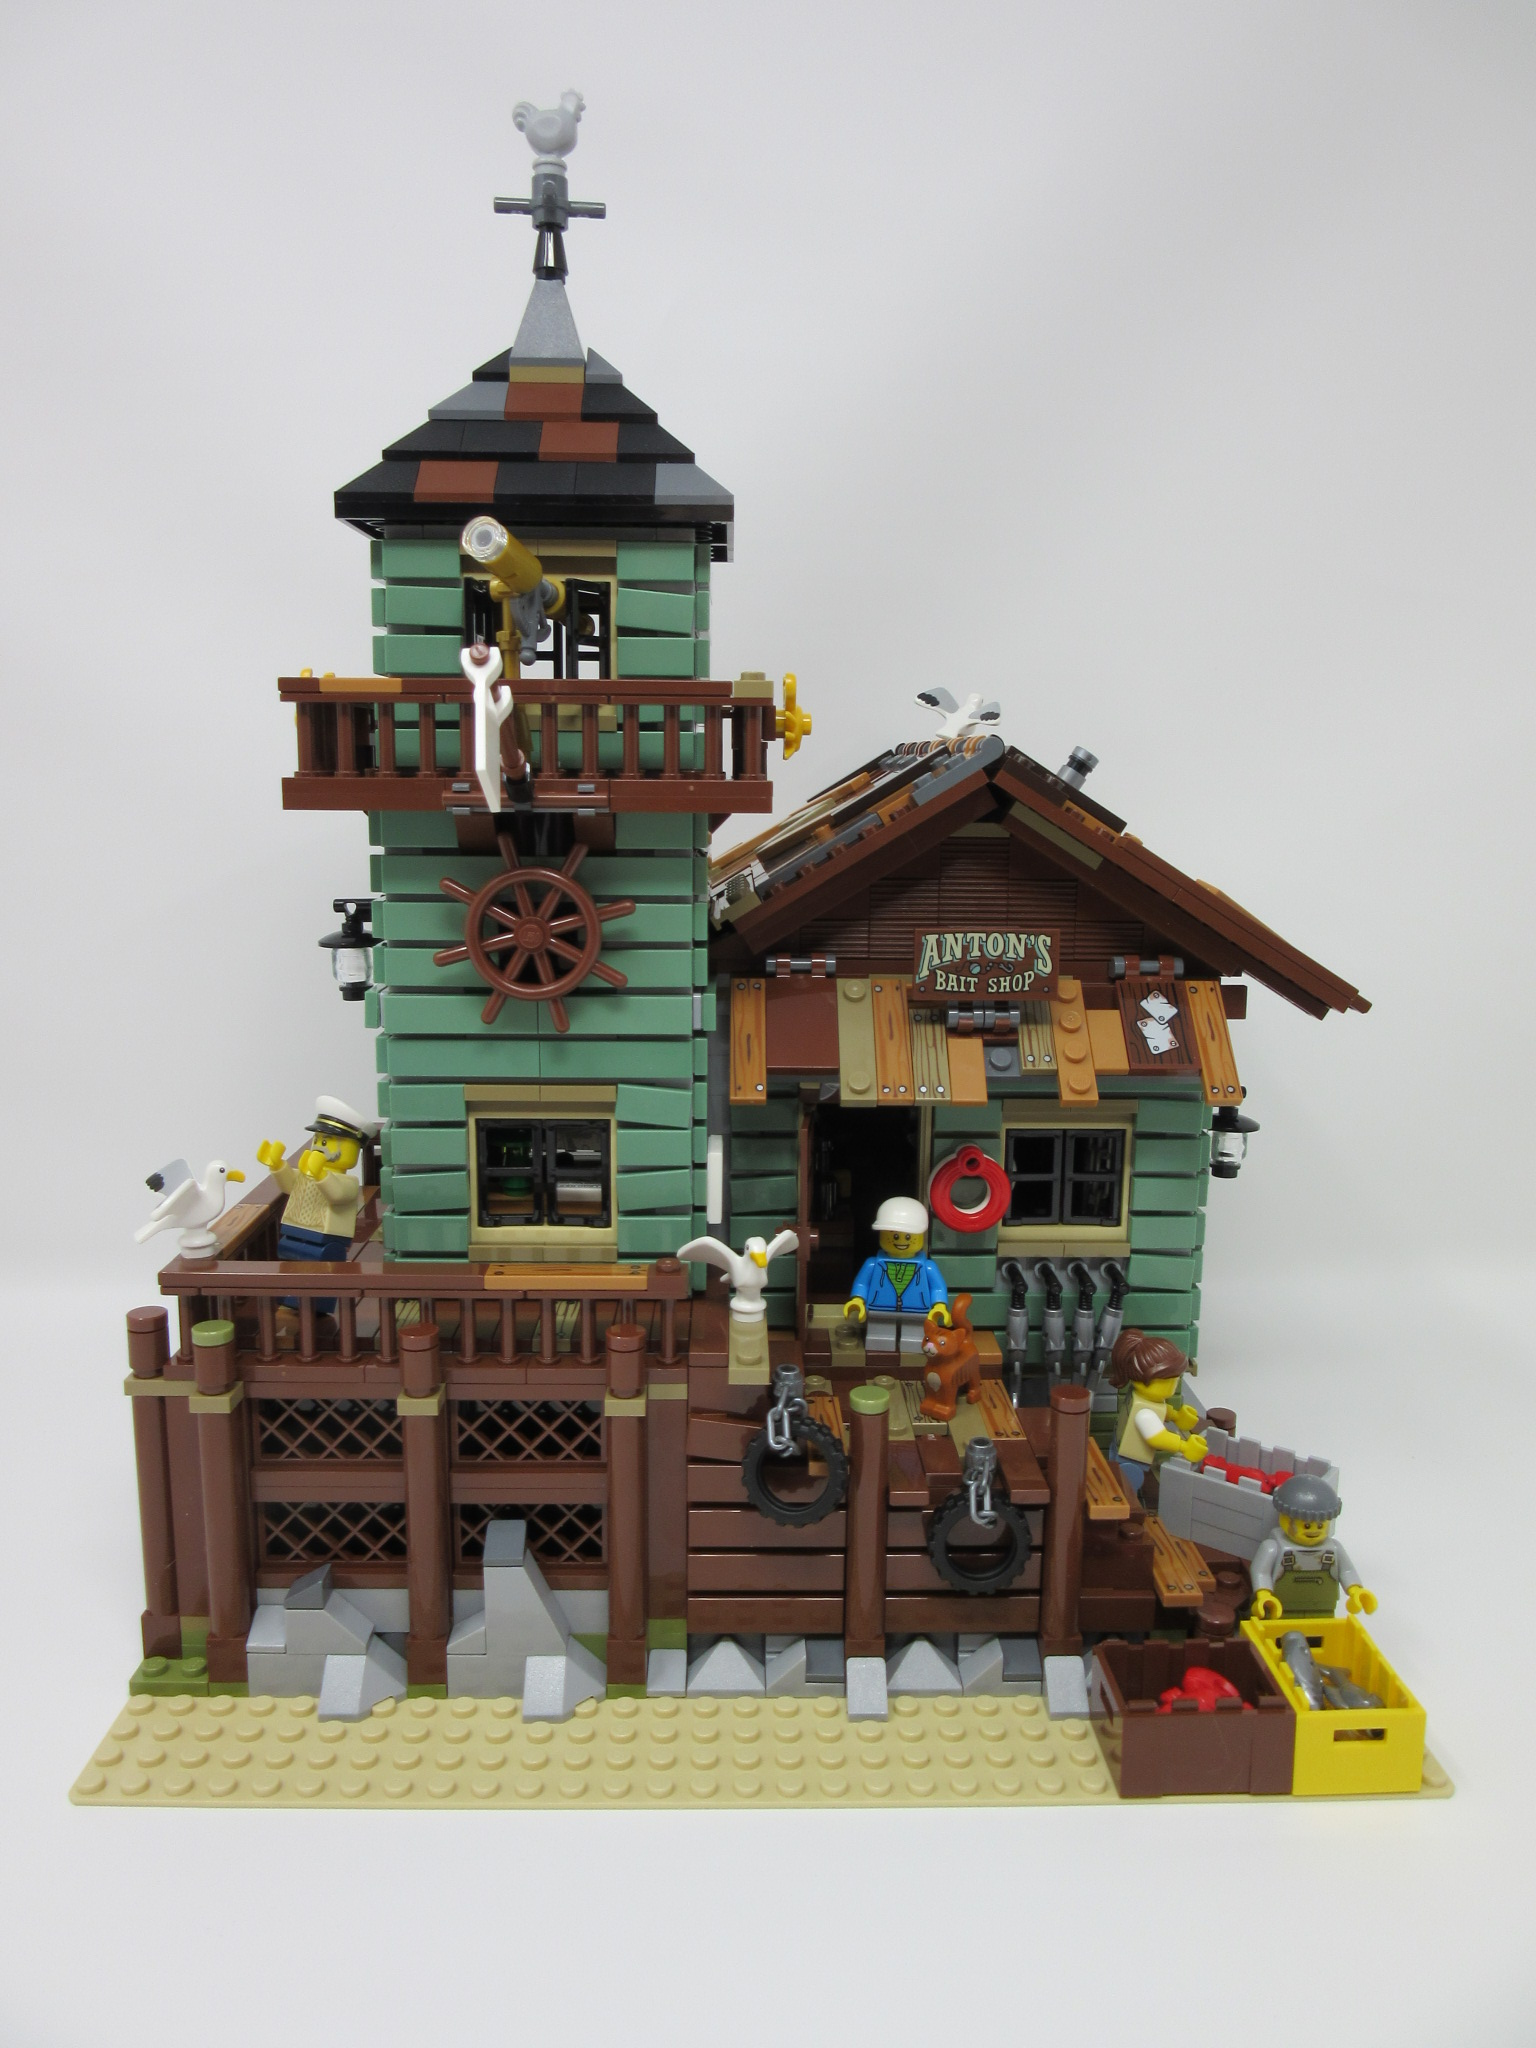 Lego ideas old fishing store review wagon pilot adventures for Lego ideas old fishing store